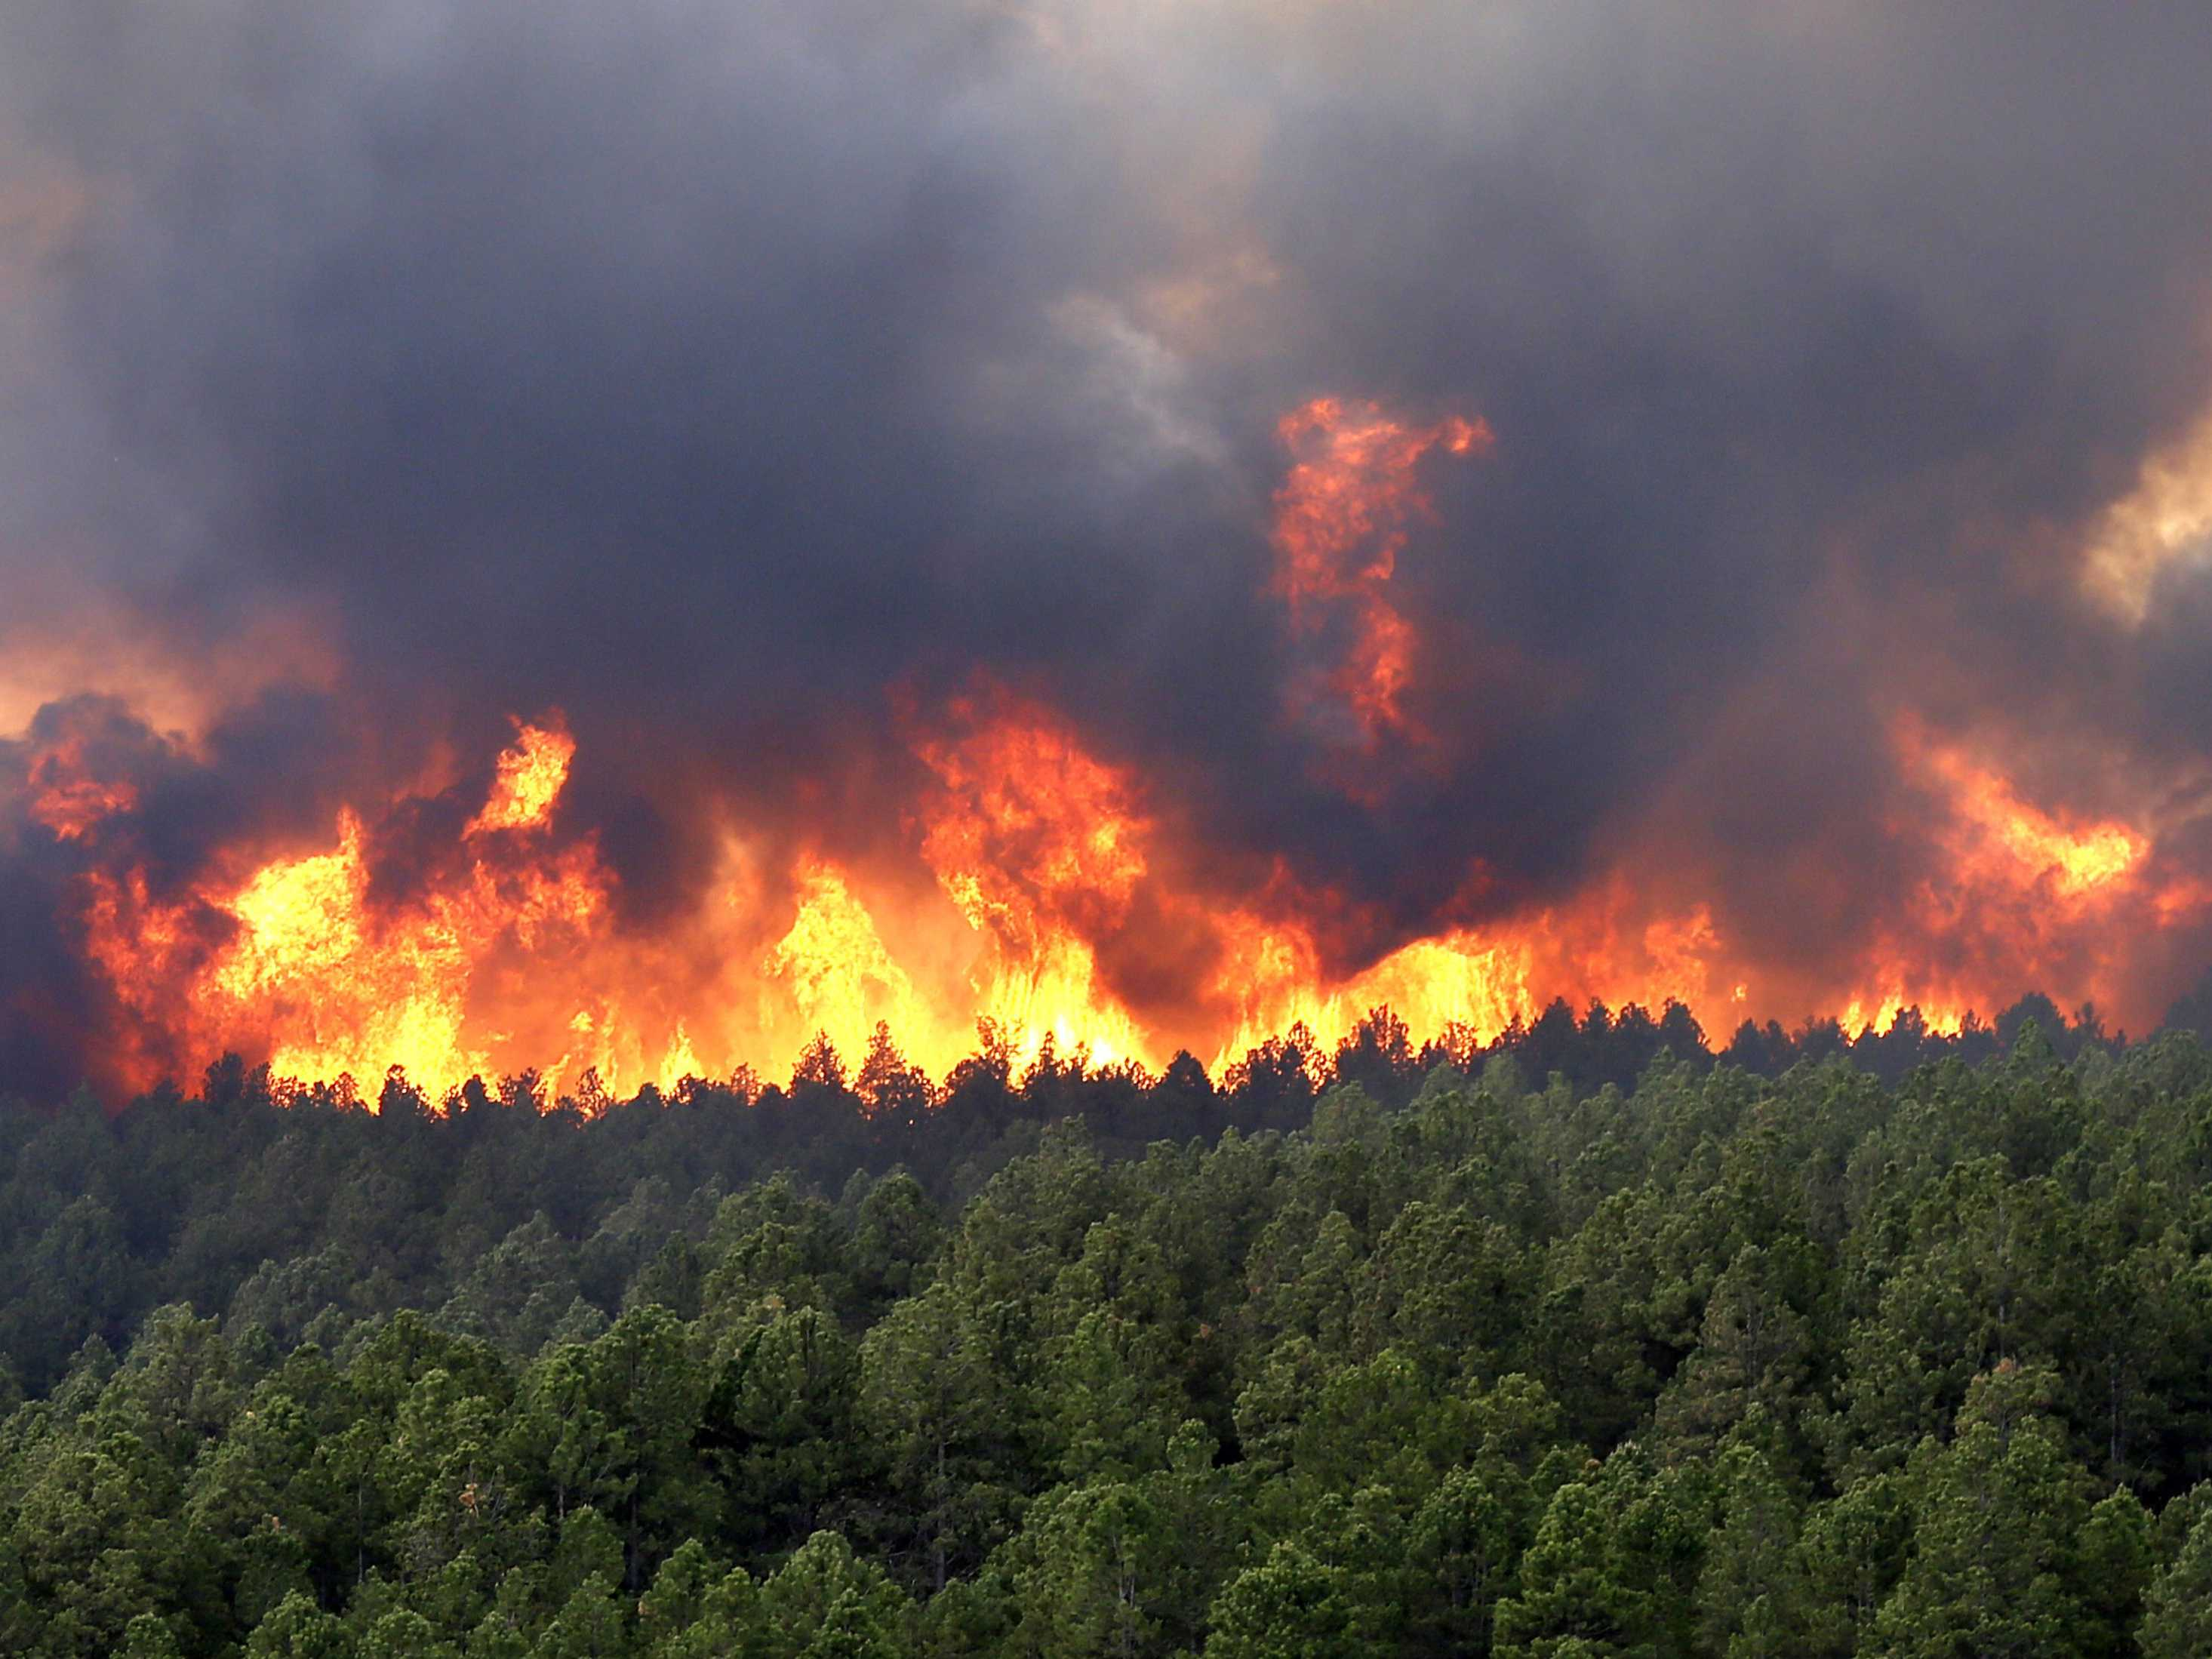 Mega forest fires found to be worsened by incompetent government regulation and mismanagement of forests